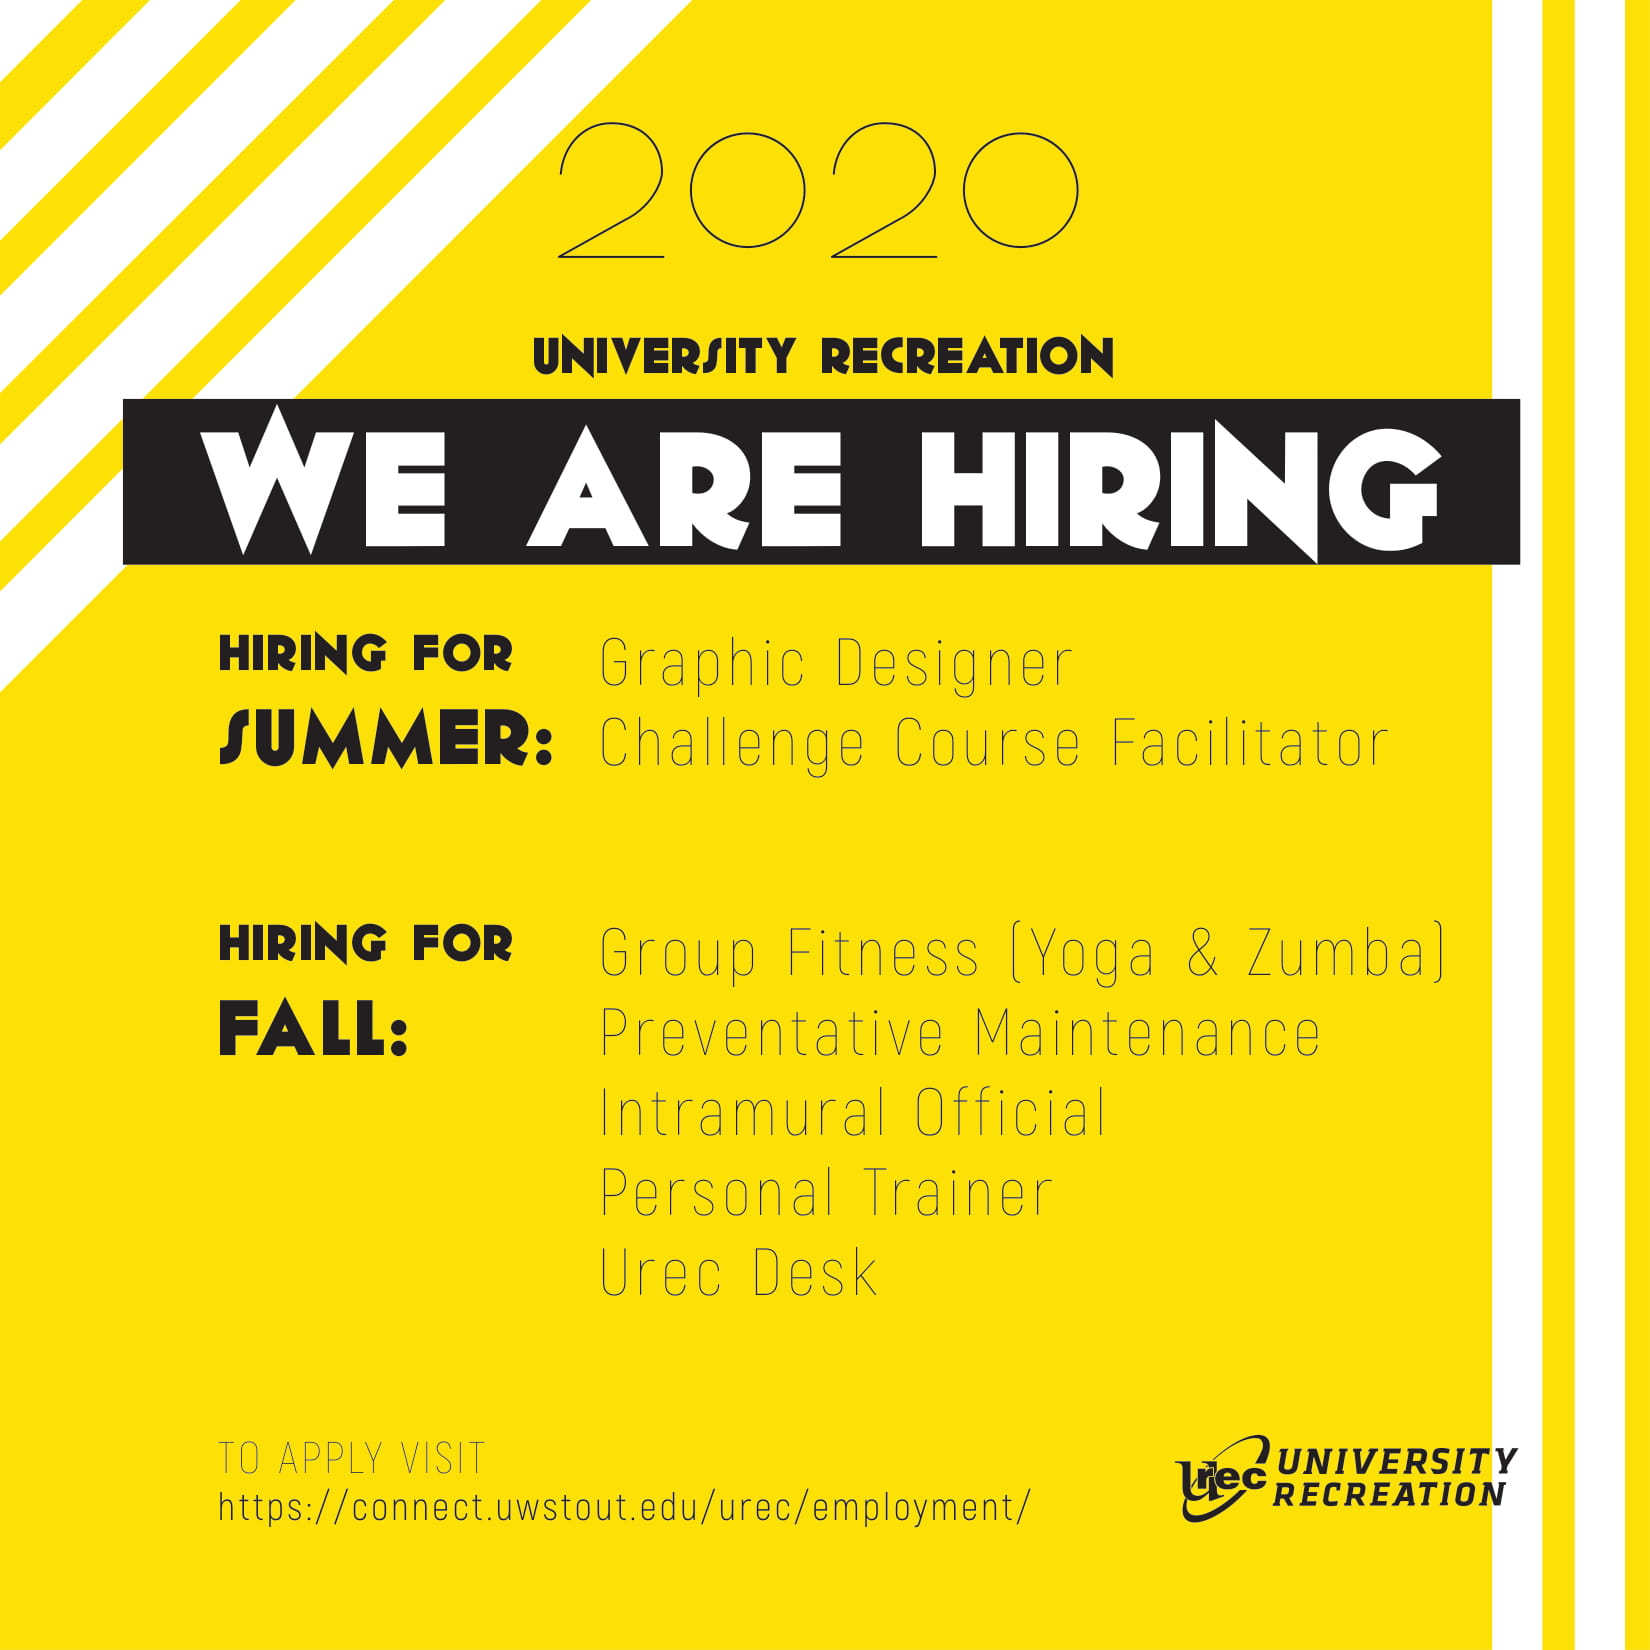 University Recreation Hiring